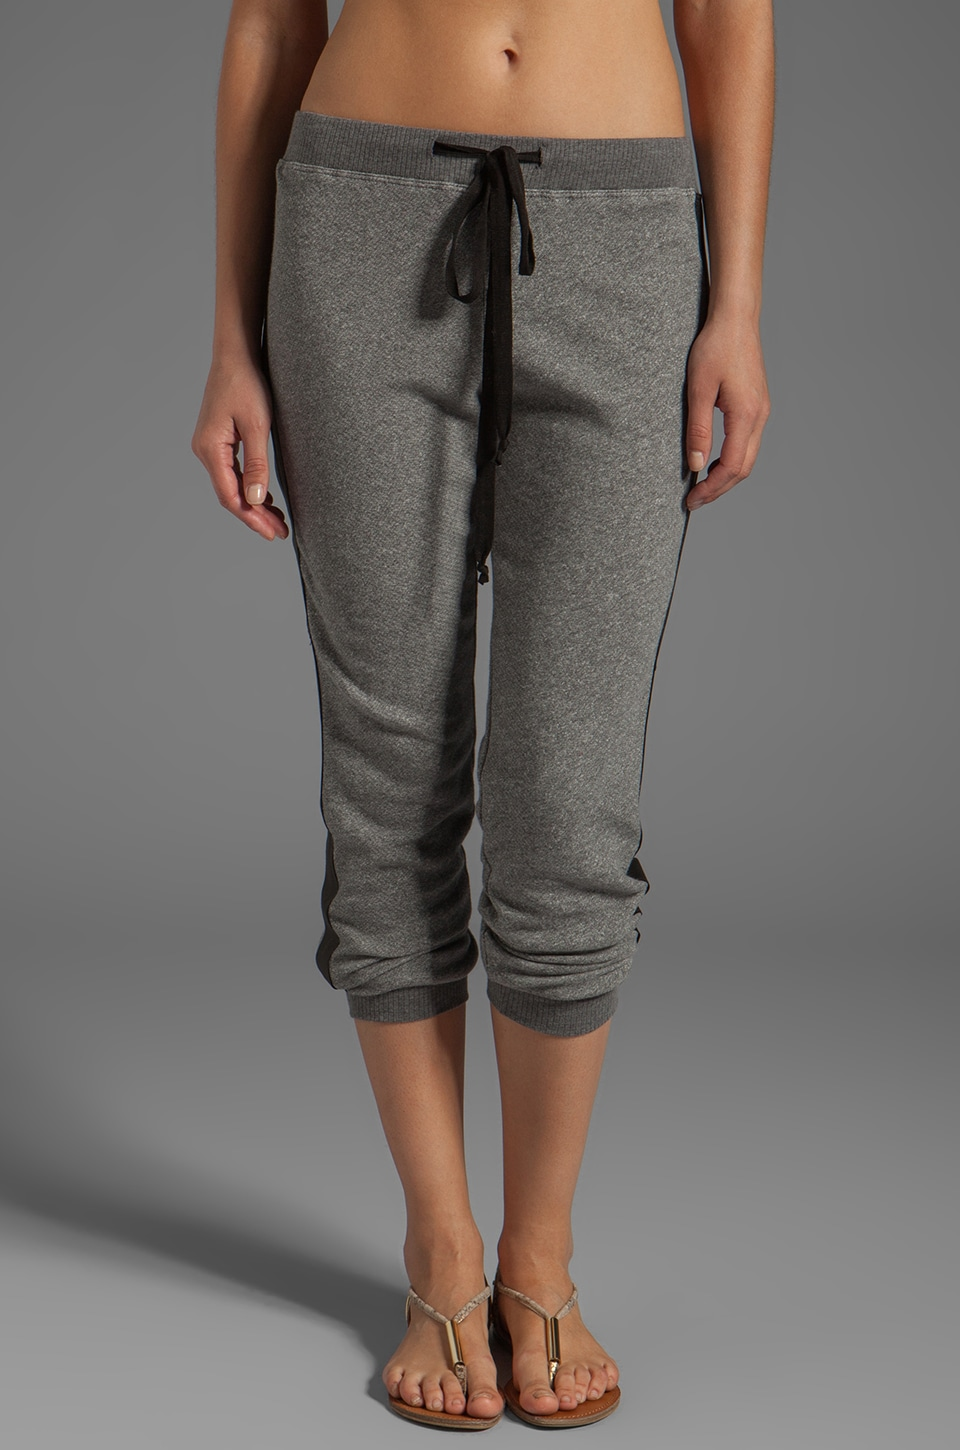 Wilt Vintage French Terry Leather Mix Sweatpants in Charcoal/Black